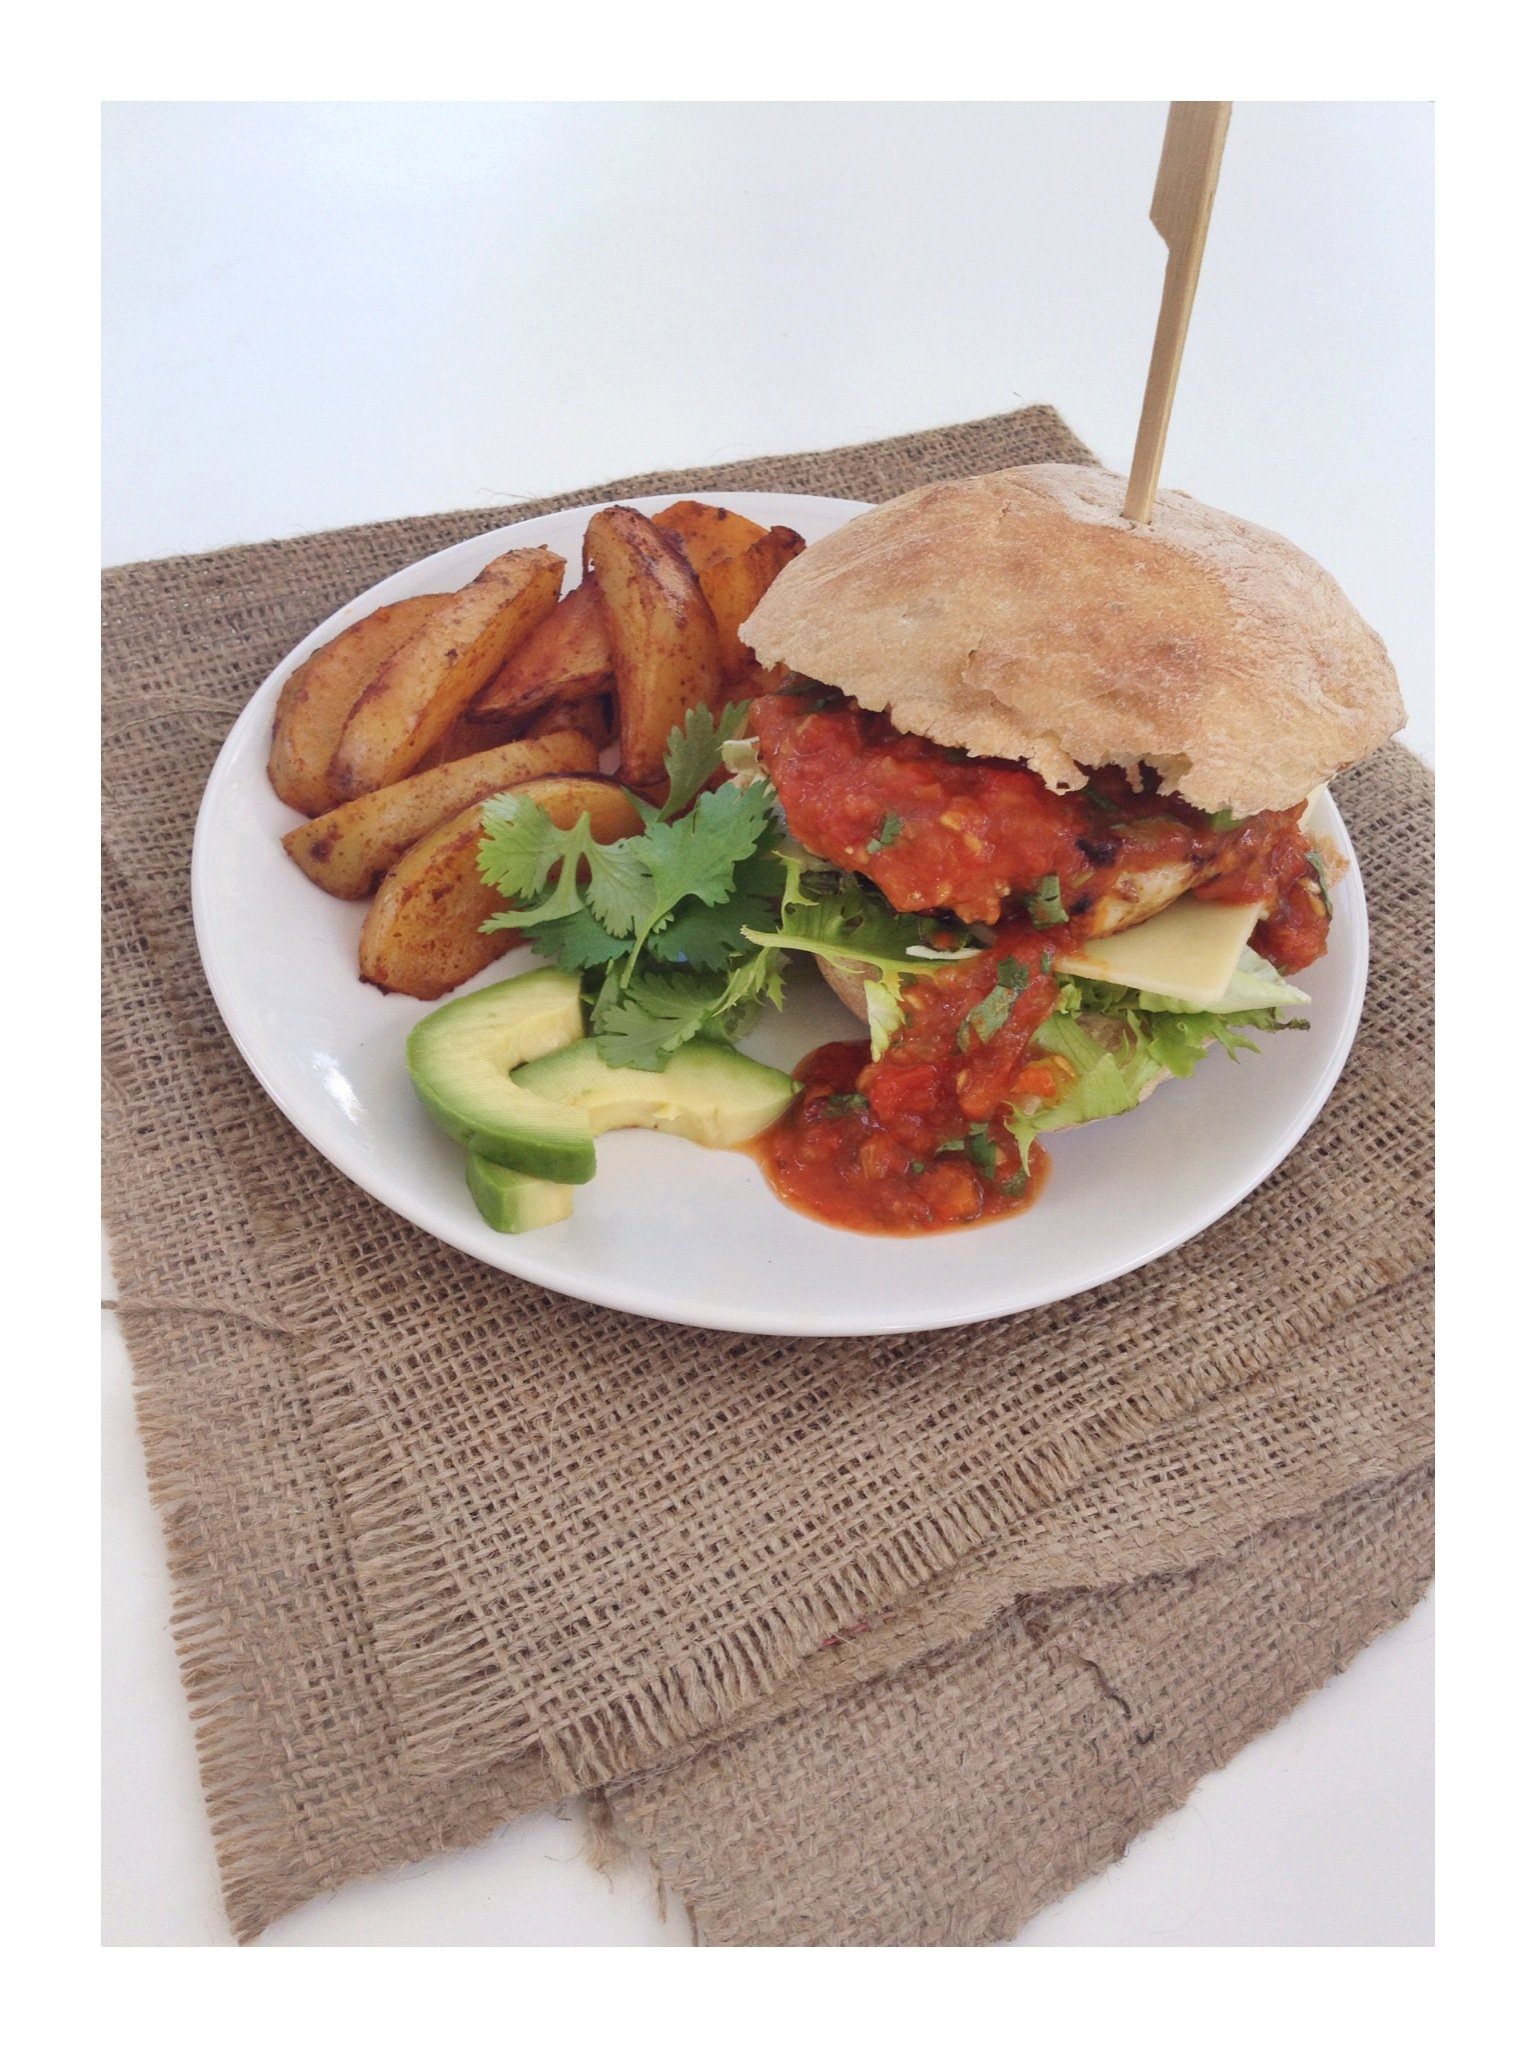 Turkey burgers with Mexican marmalade